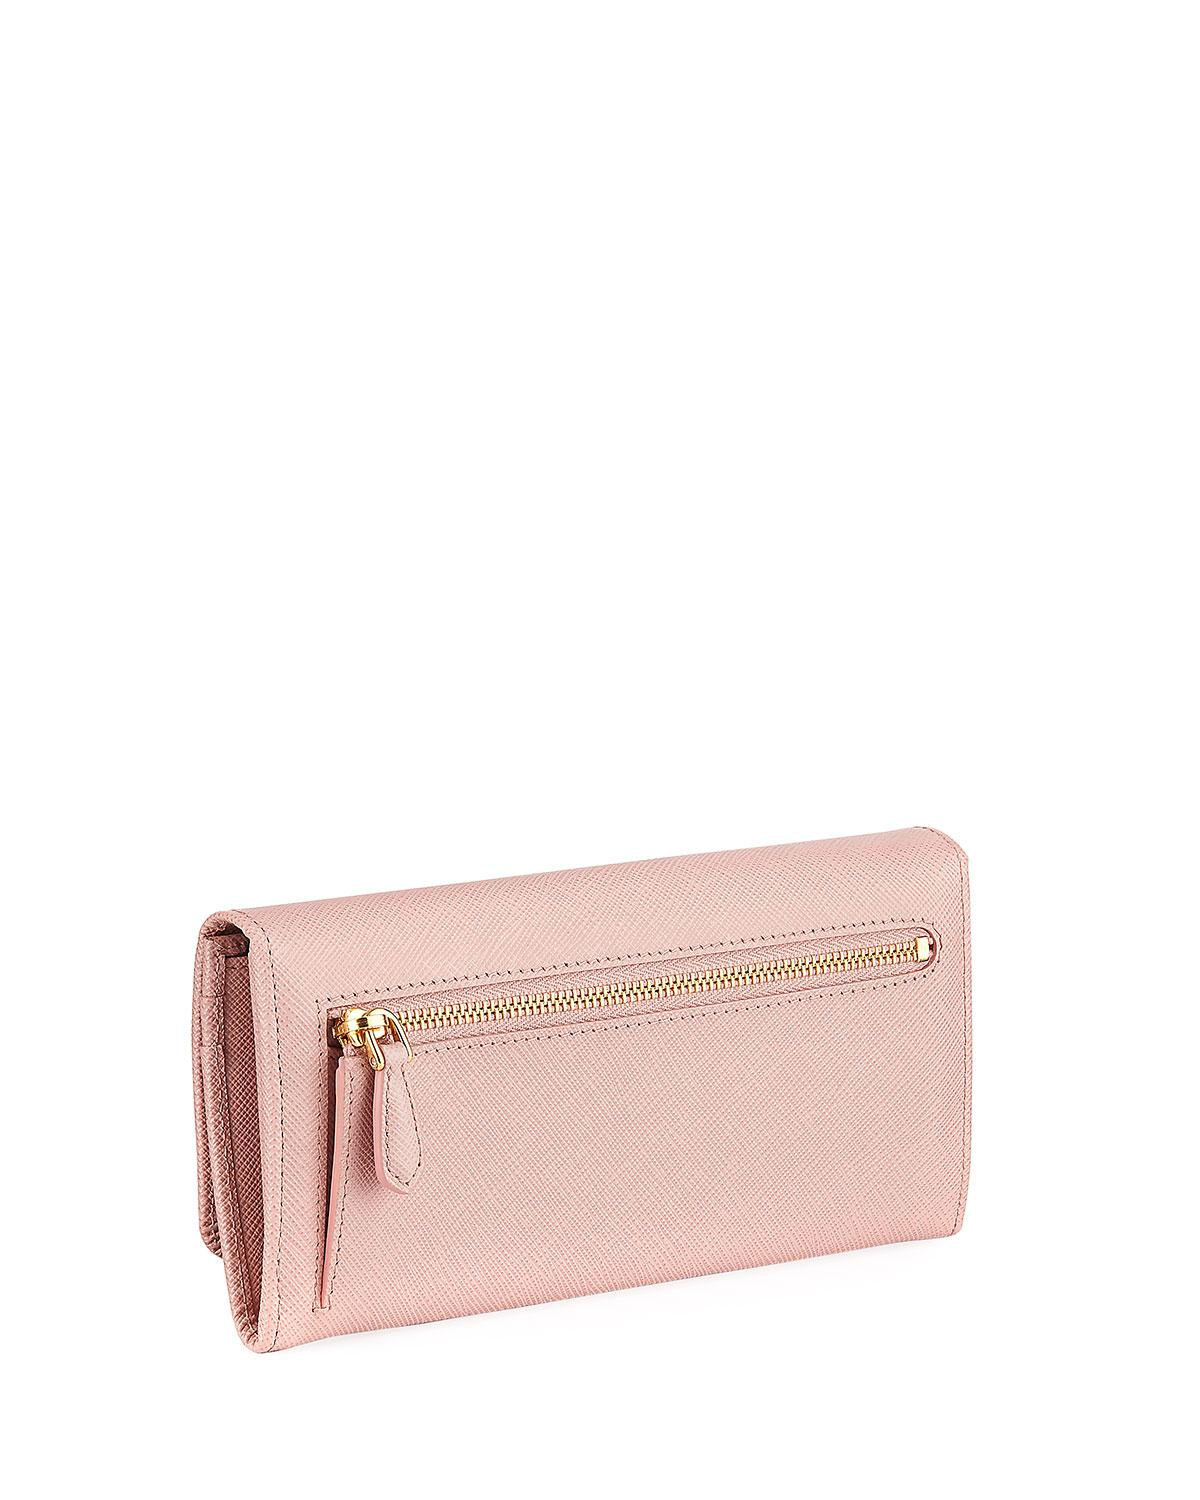 73c9168d5575 ... sale prada pink saffiano continental flap wallet with bow lyst. view  fullscreen d7524 ab291 ...